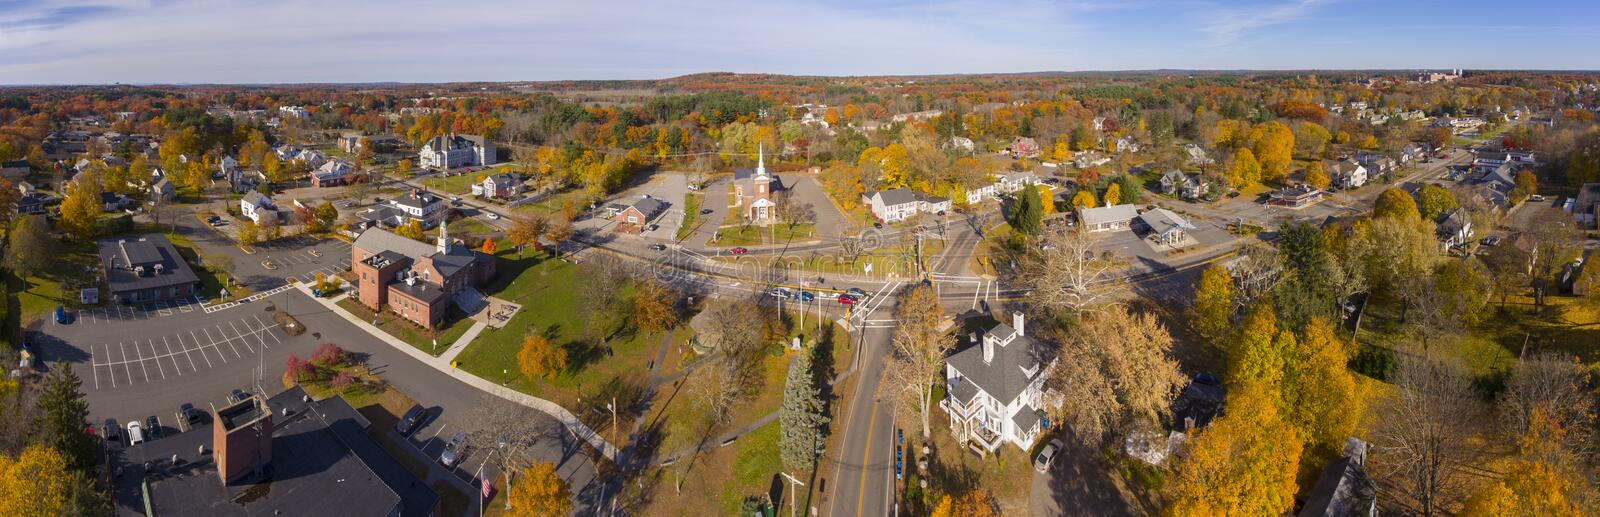 Tewksbury town center aerial view, MA, USA. Tewksbury historic town center aerial view panorama on Main Street in fall, Tewksbury, Massachusetts, MA, USA royalty free stock images